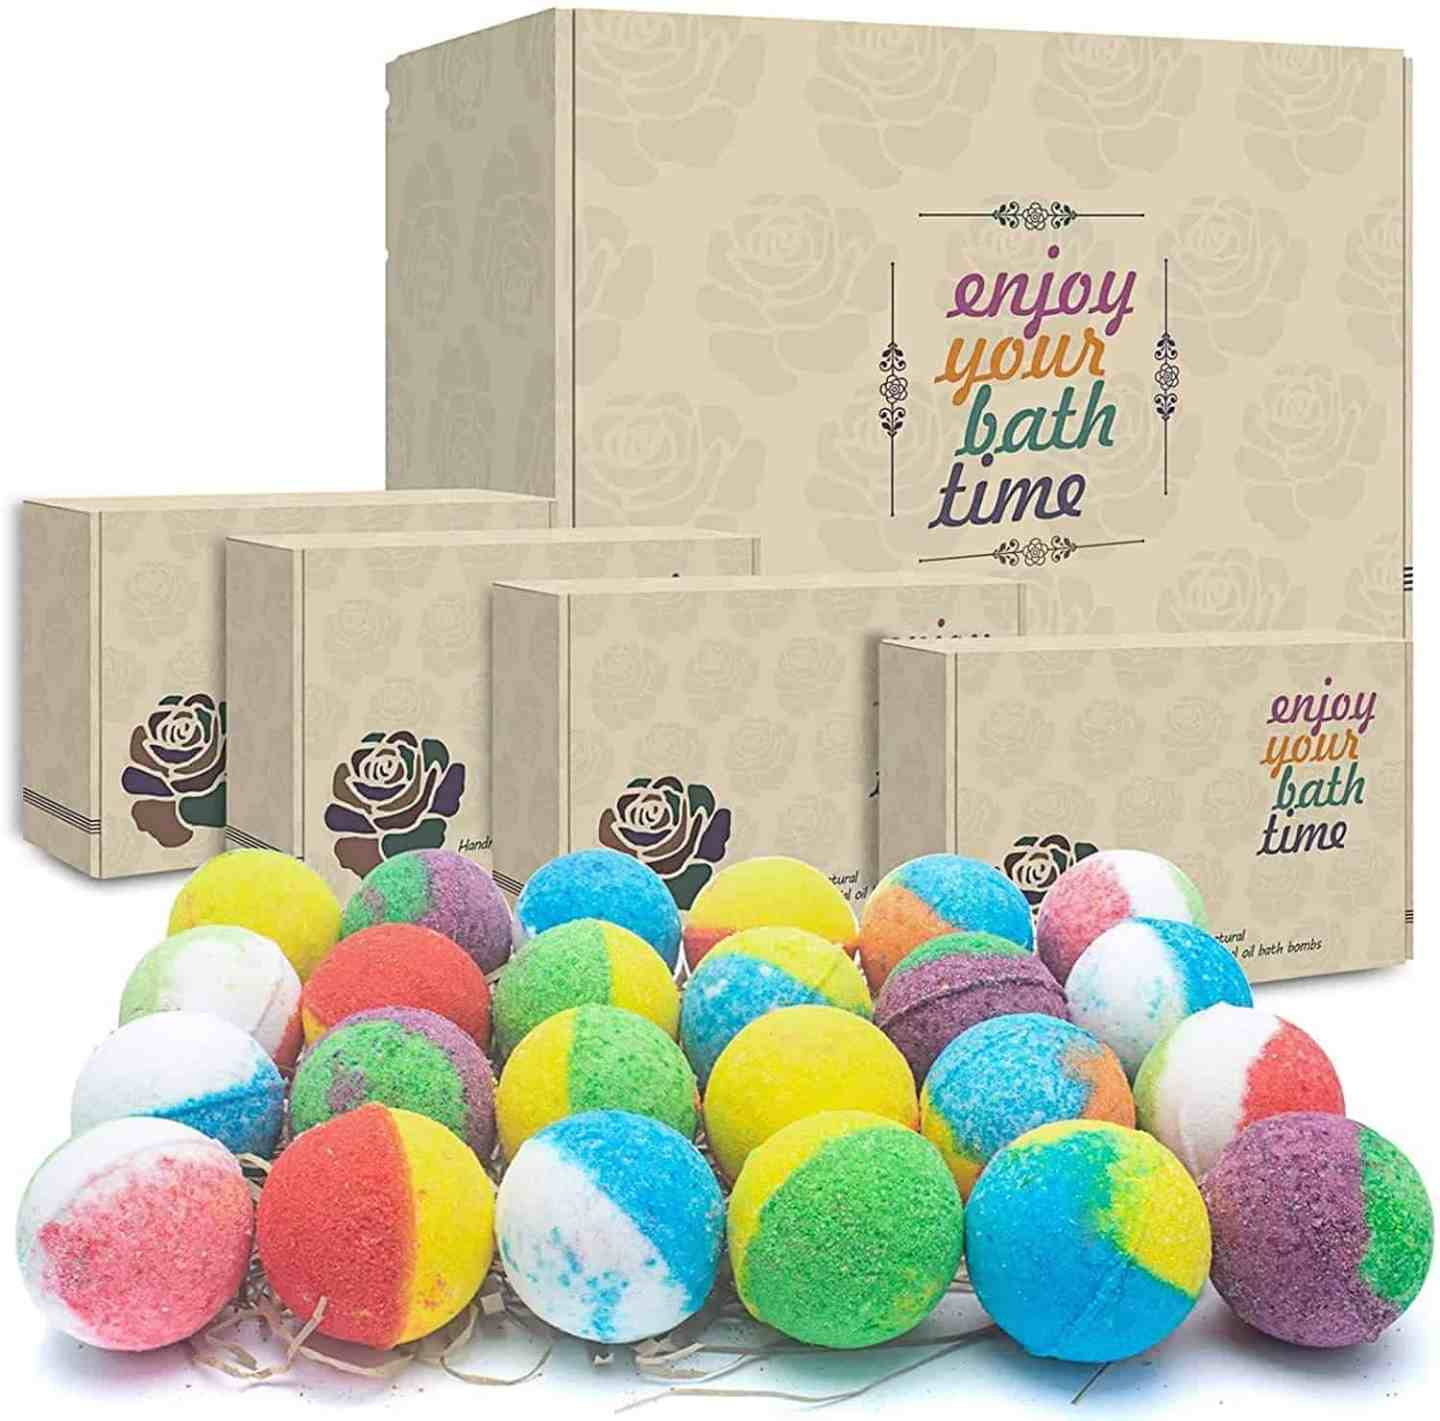 set-of-bath-bombs-gift-ideas-for-moms